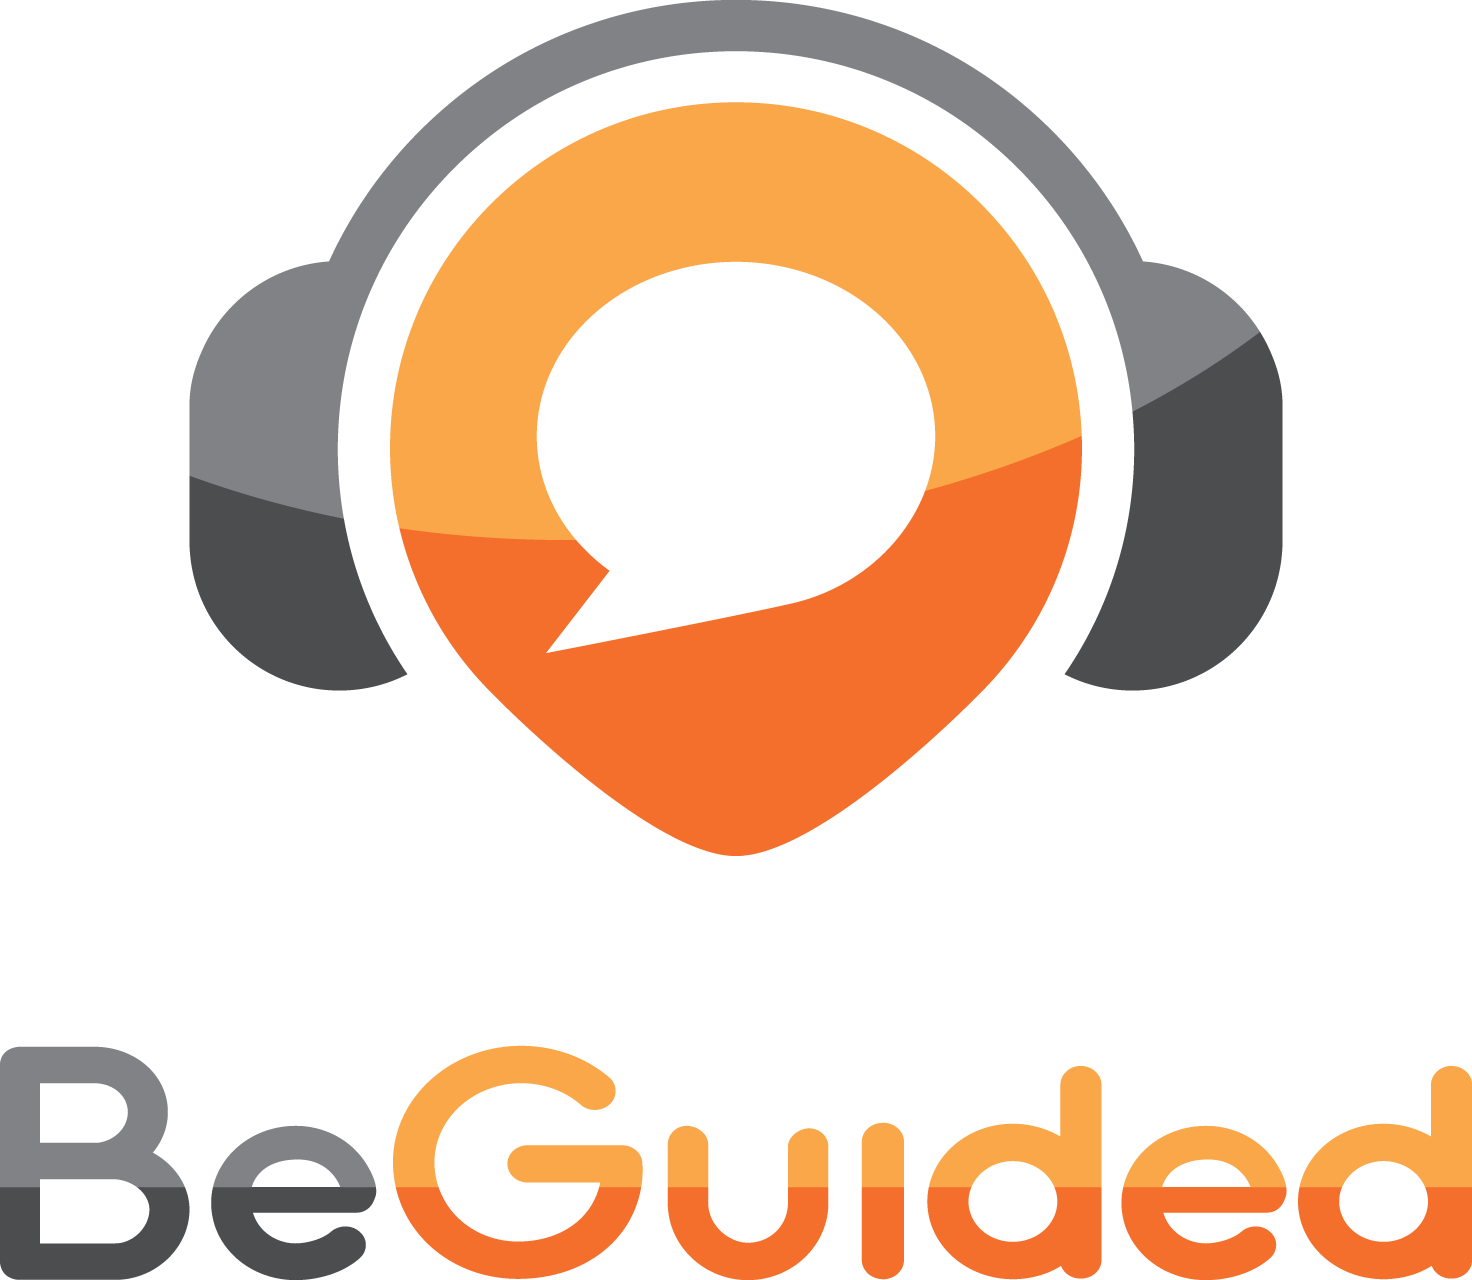 beguided_logo